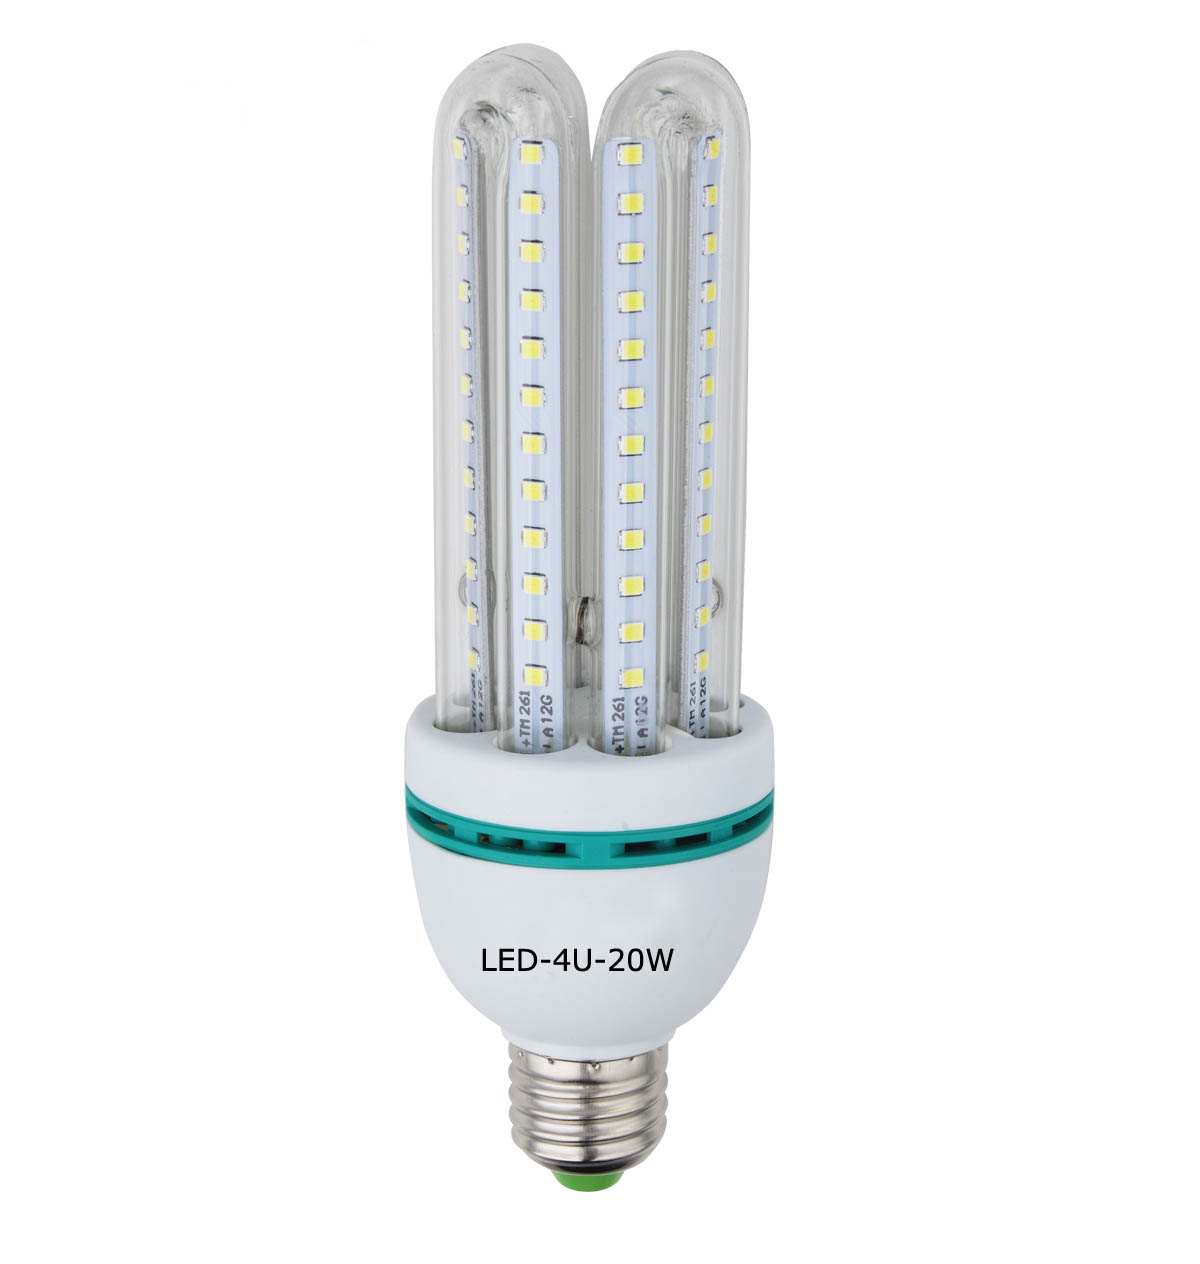 LED corn bulbs 4U 20W